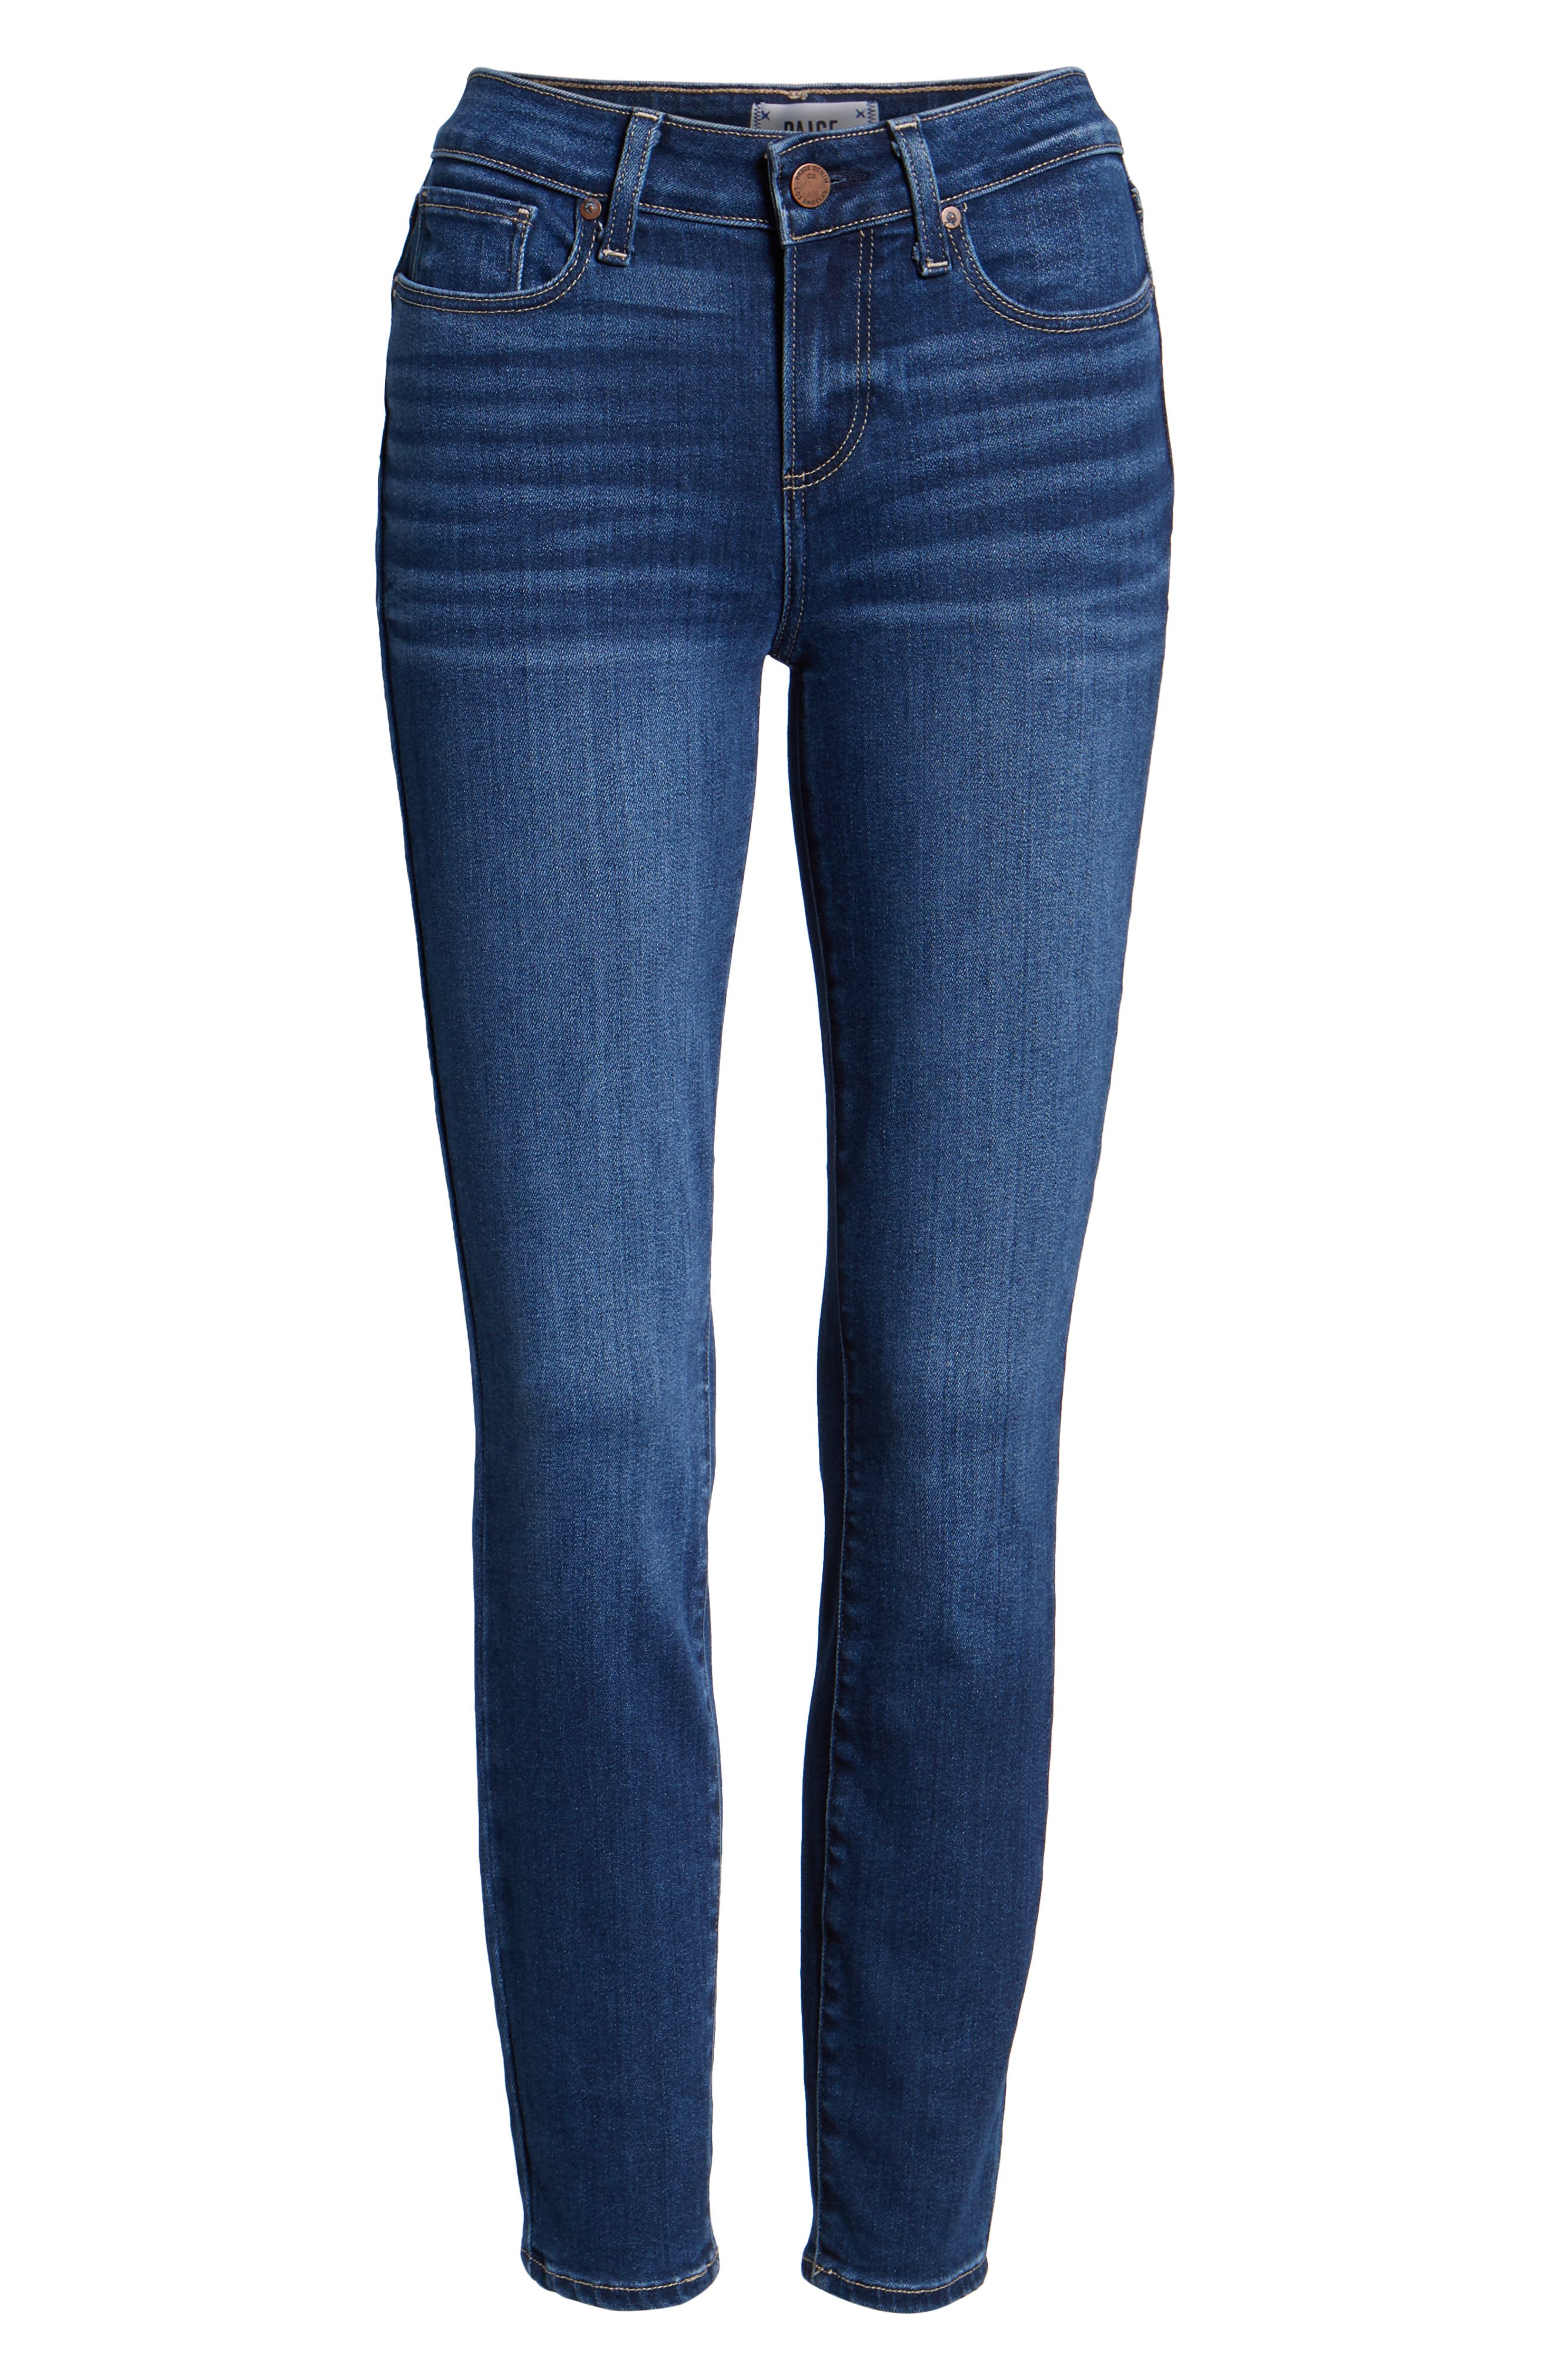 Verdugo Ankle Skinny Jeans,                             Alternate thumbnail 7, color,                             TOWNSEND